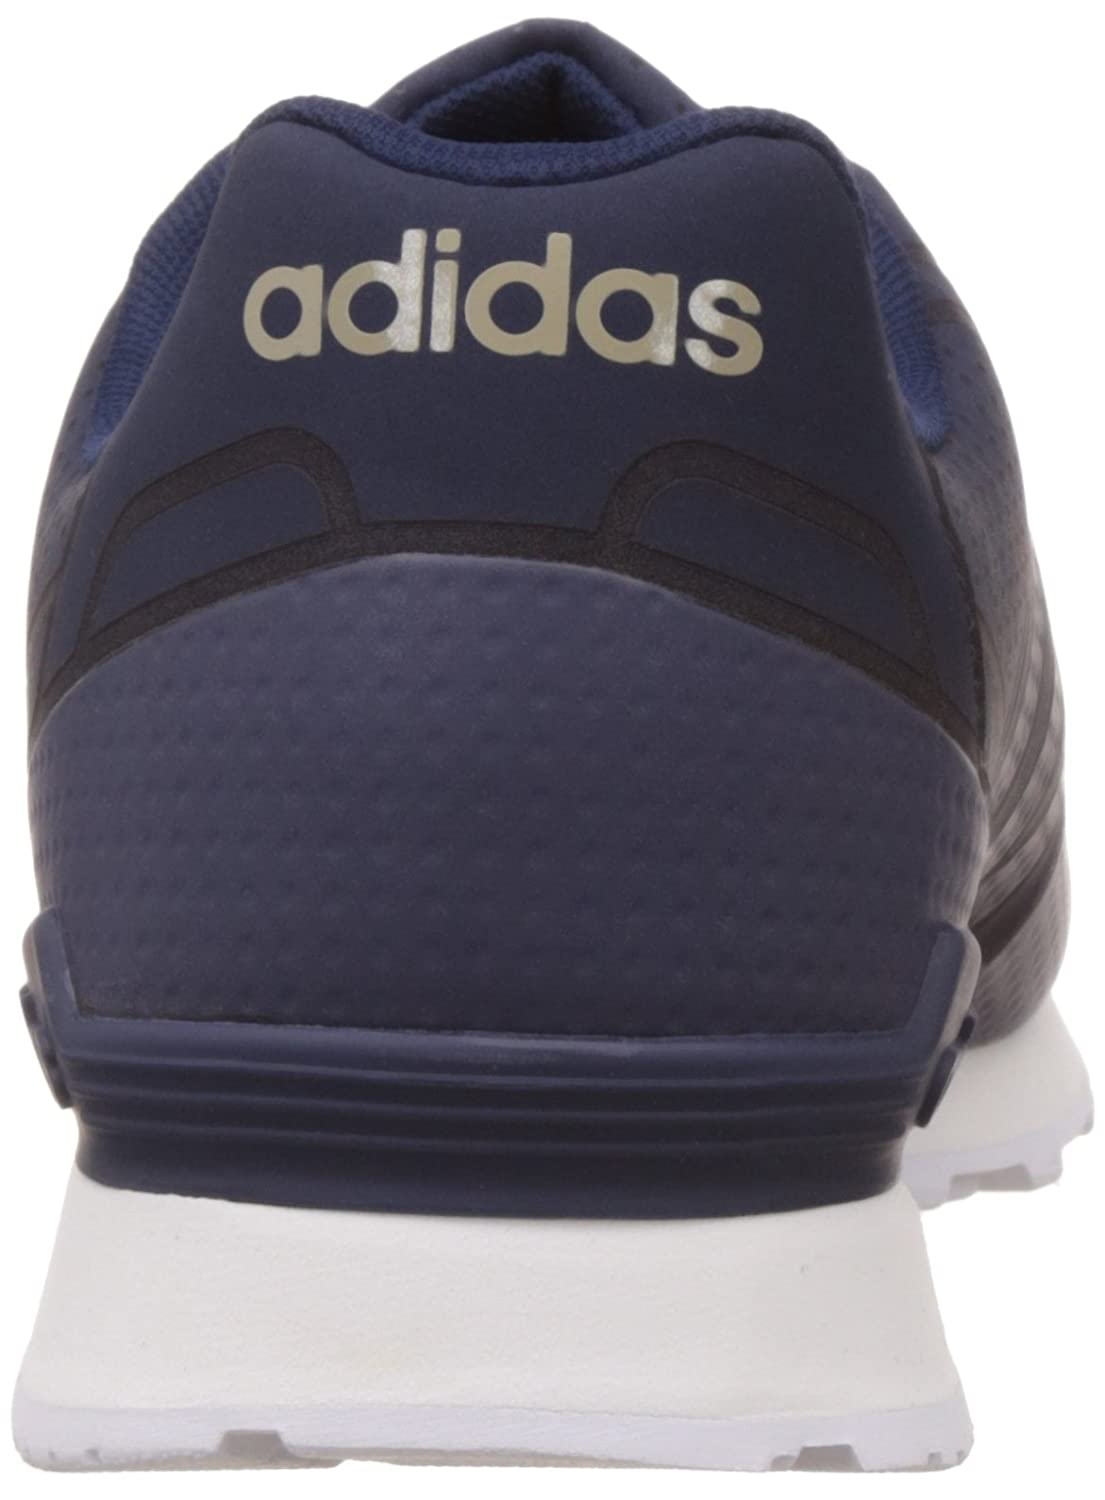 the latest 7614f 732e1 adidas 10K Casual - Sneakers for Men, 45 13, Blue Amazon.co.uk Shoes   Bags